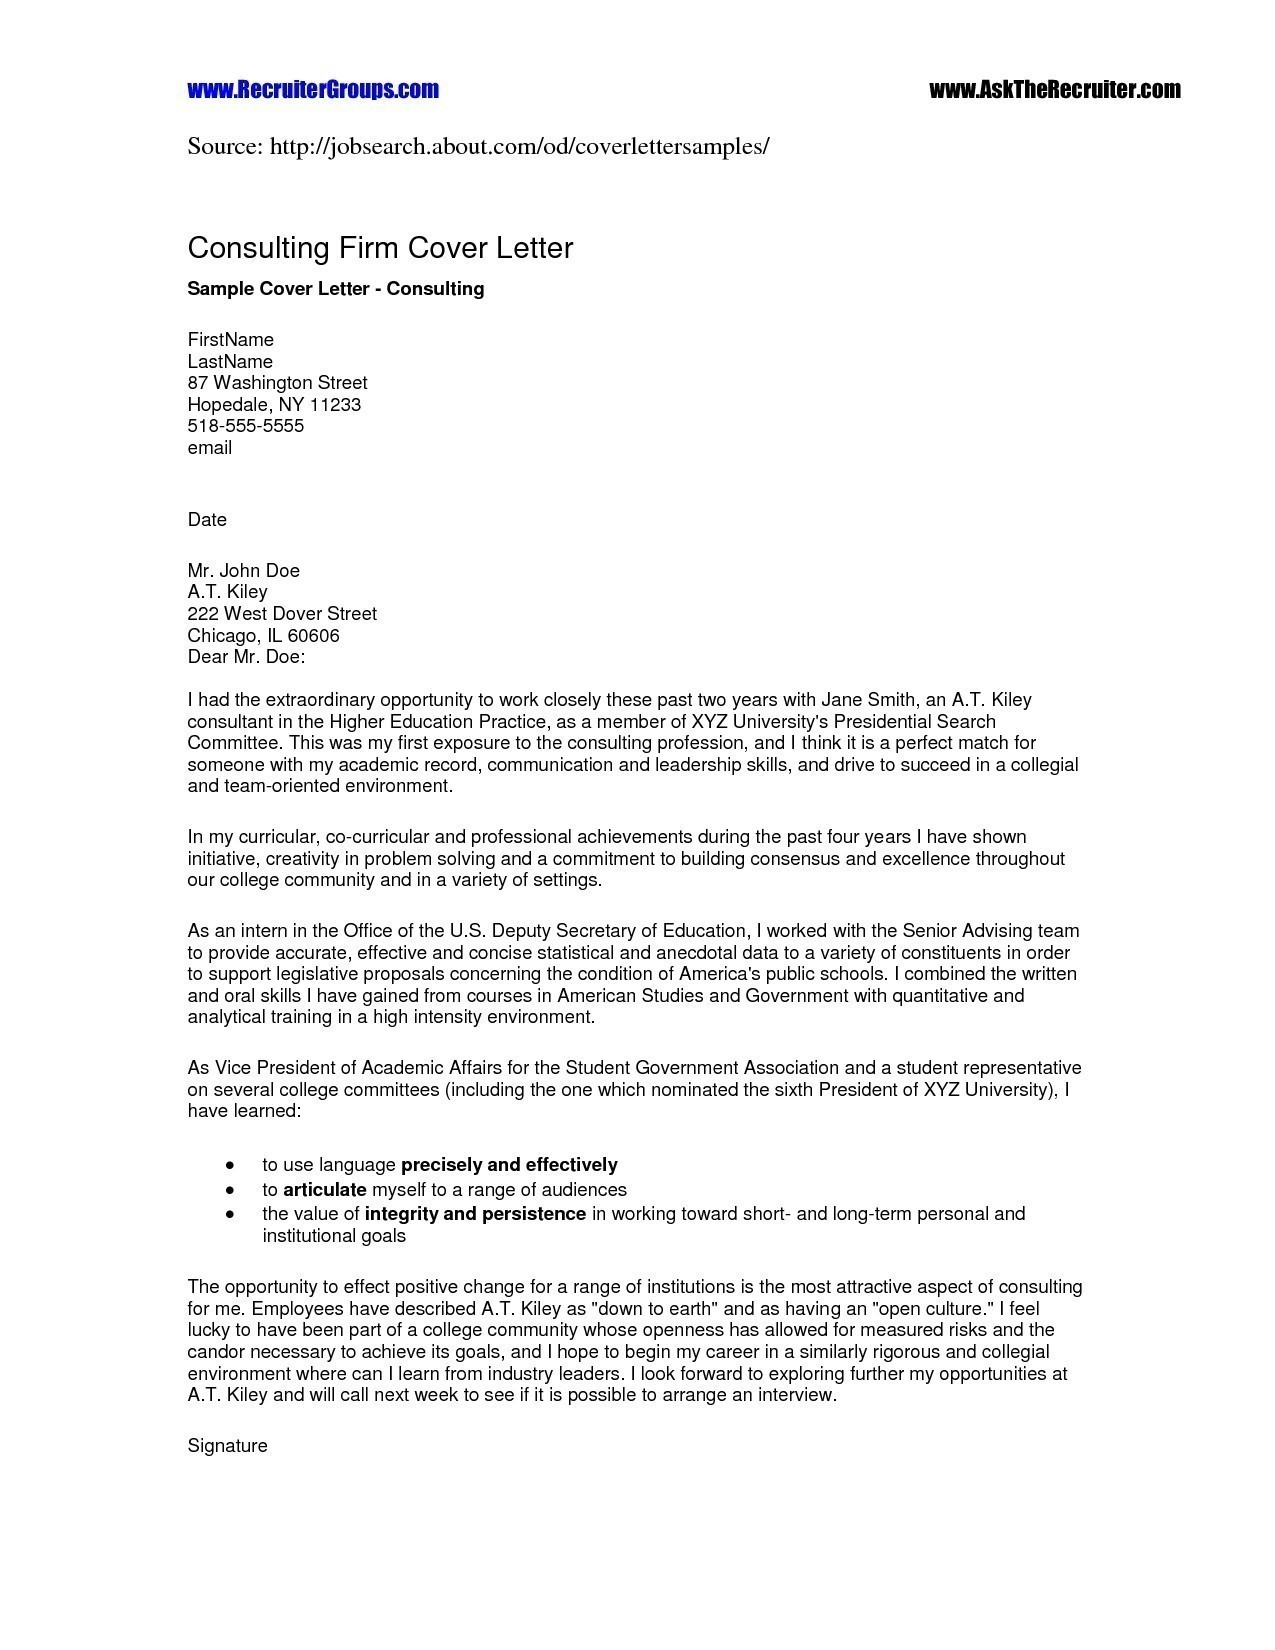 Work Offer Letter Template - How to Write Job Fer Letter Fresh Job Fer Letter Sample Best Job